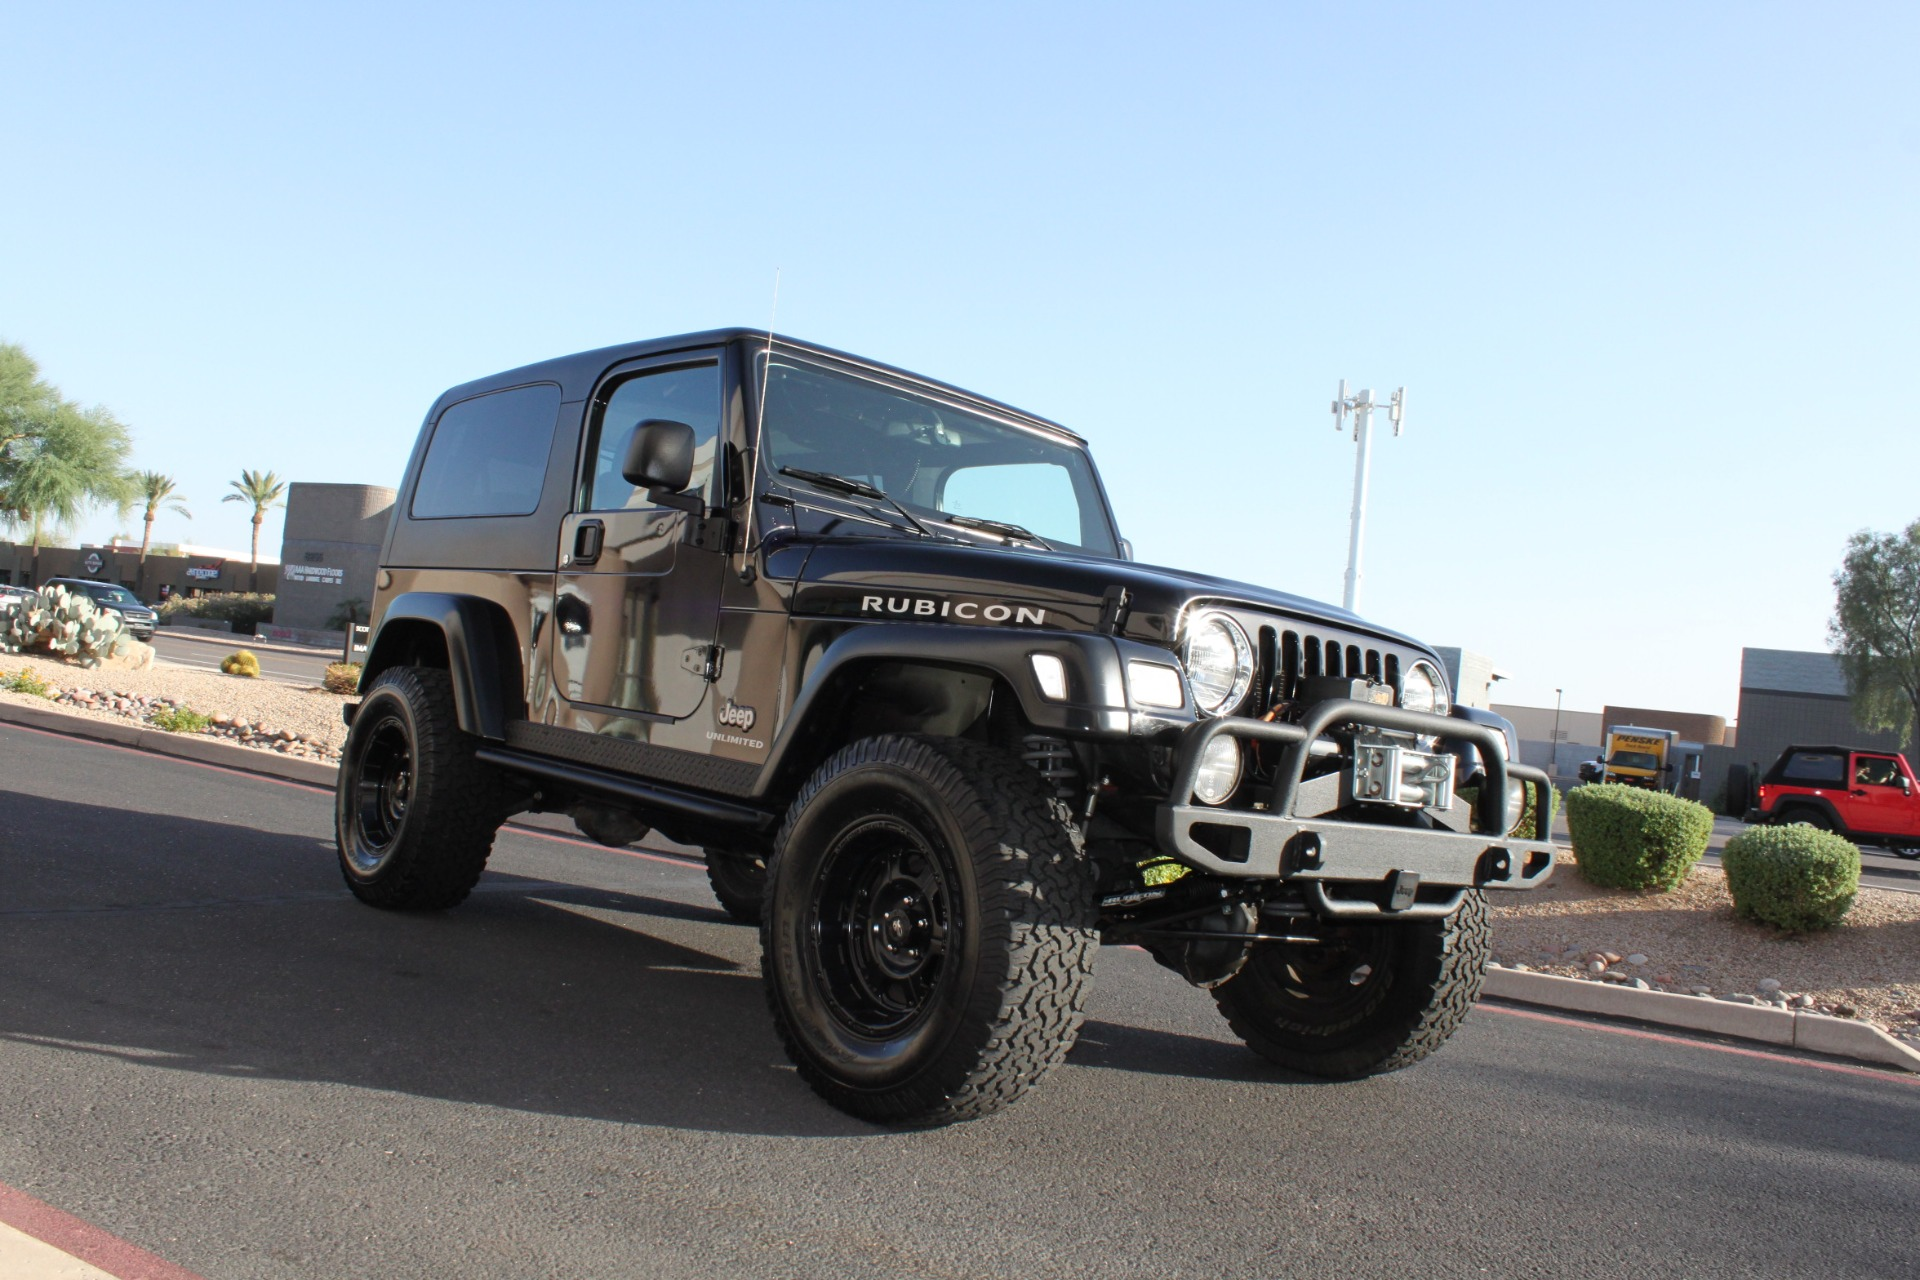 Used-2006-Jeep-Wrangler-Unlimited-Rubicon-LWB-Dodge